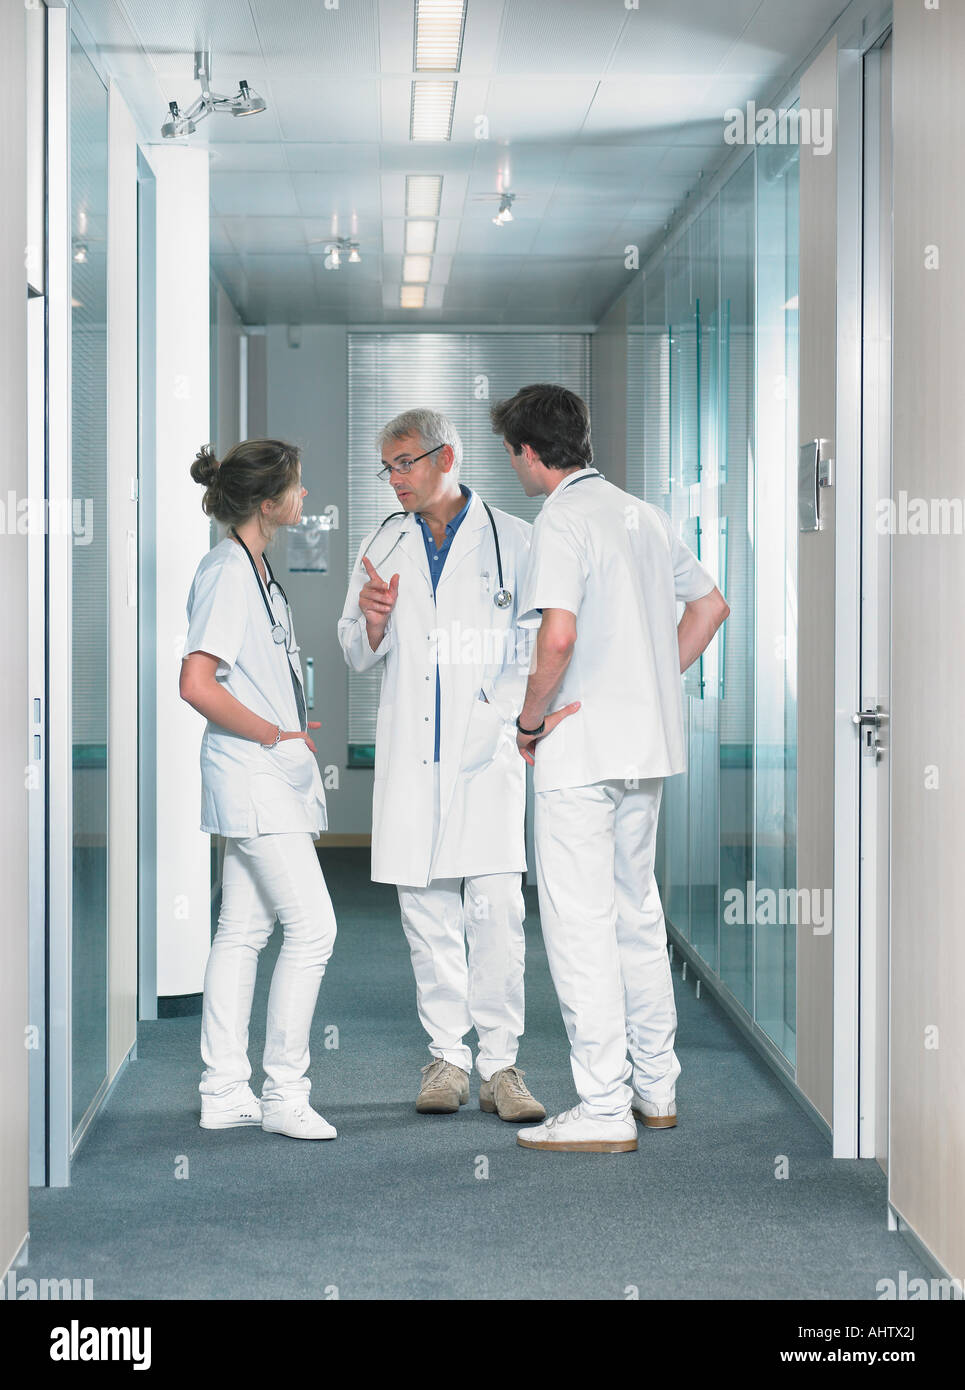 Three doctors in discussion in hospital lobby. - Stock Image